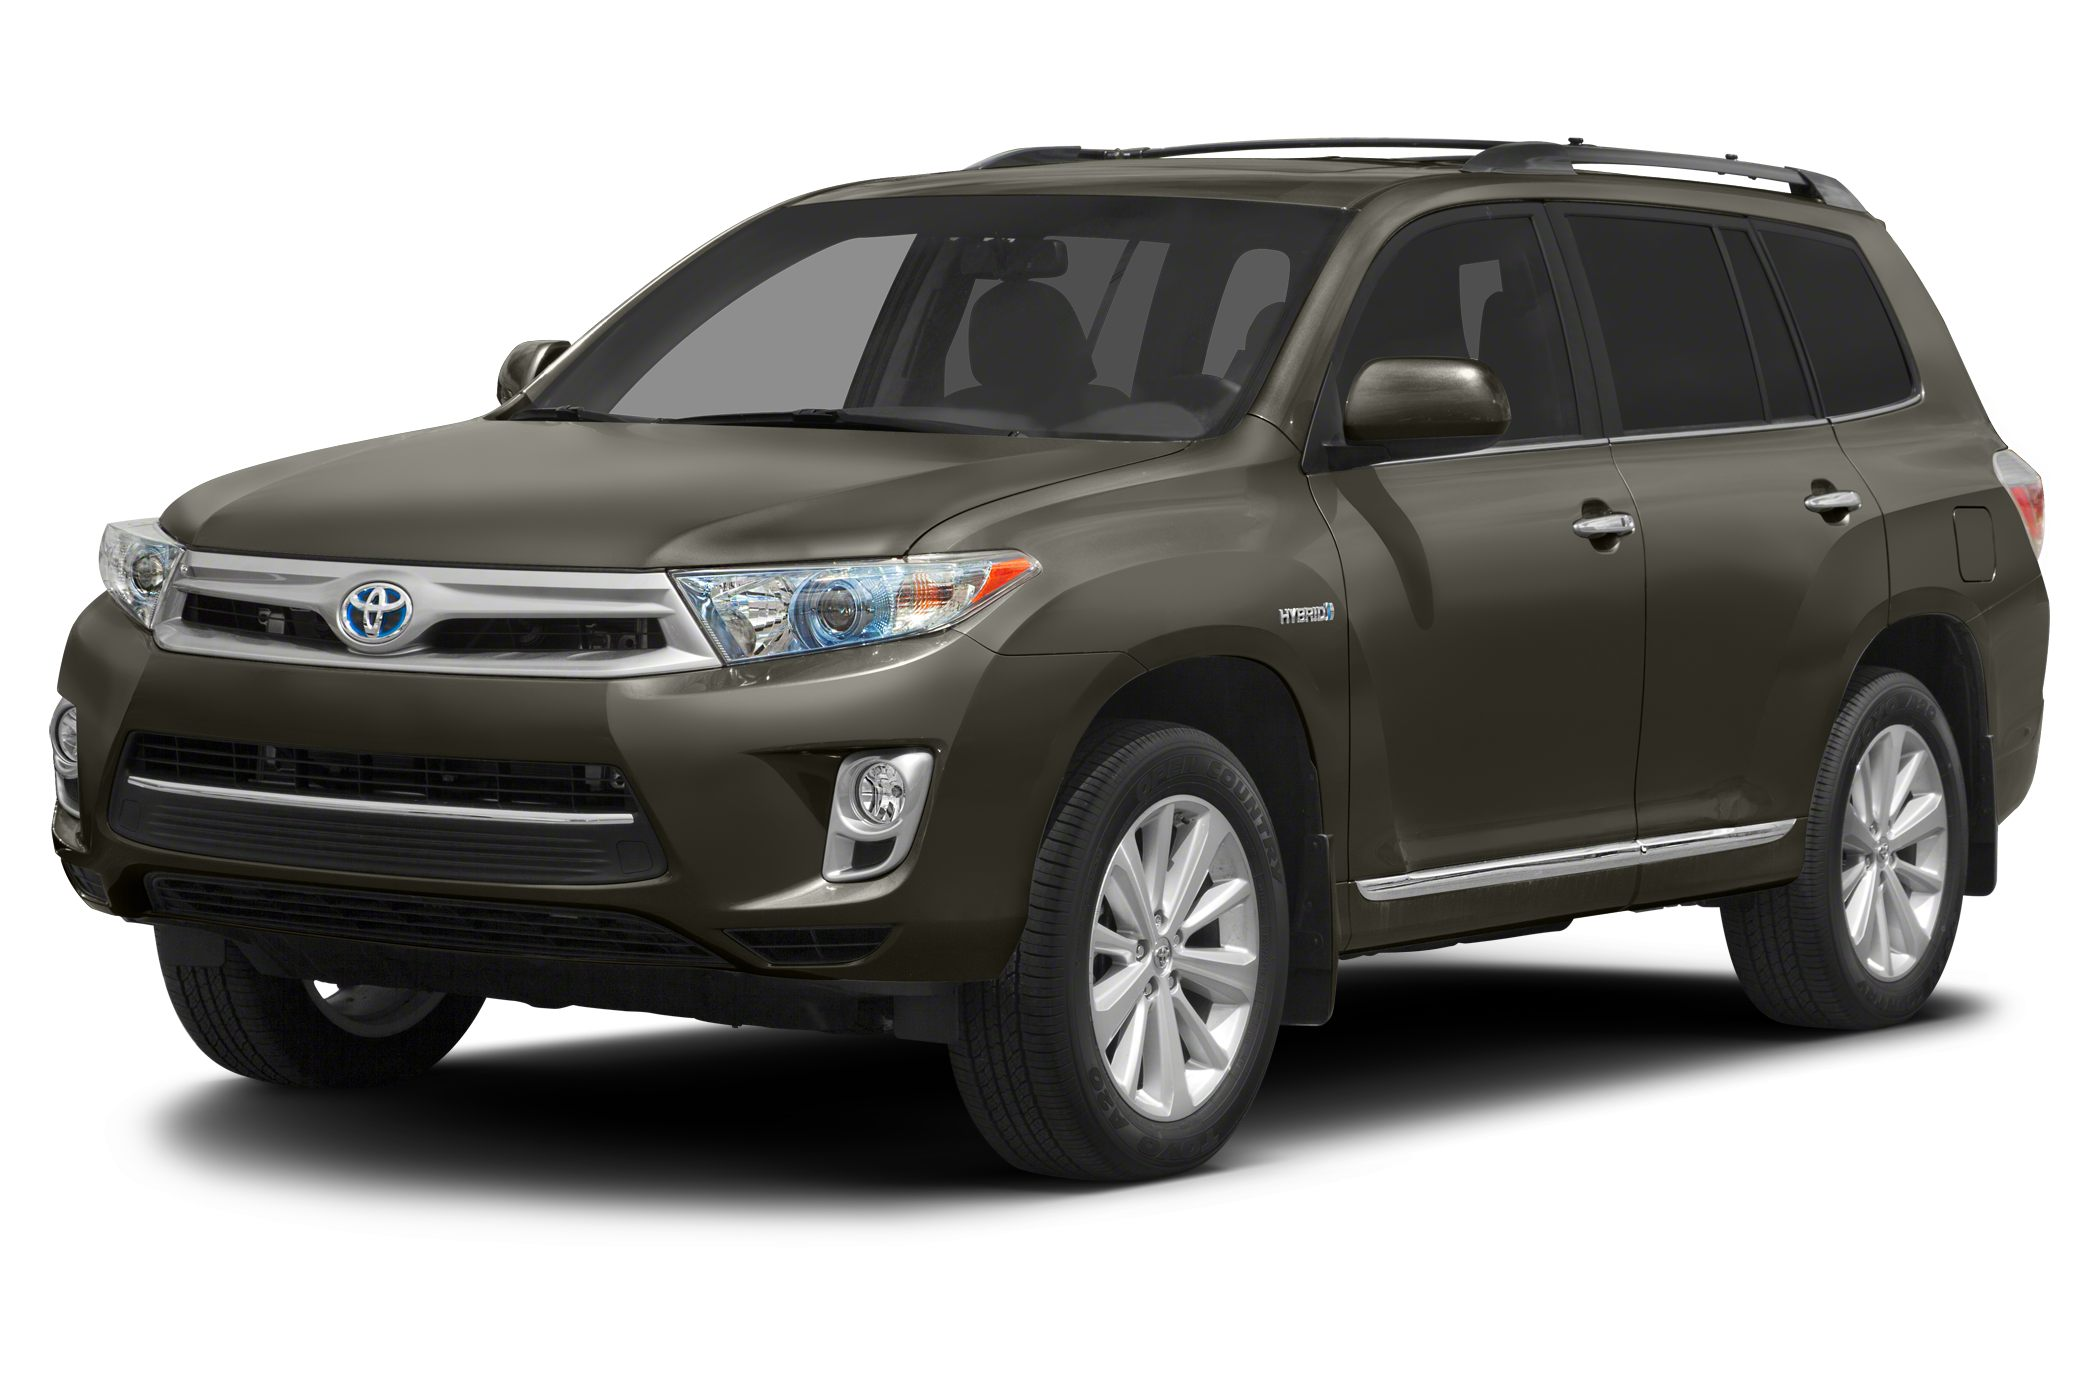 2013 Toyota Highlander Hybrid Base SUV for sale in San Marcos for $29,637 with 61,048 miles.